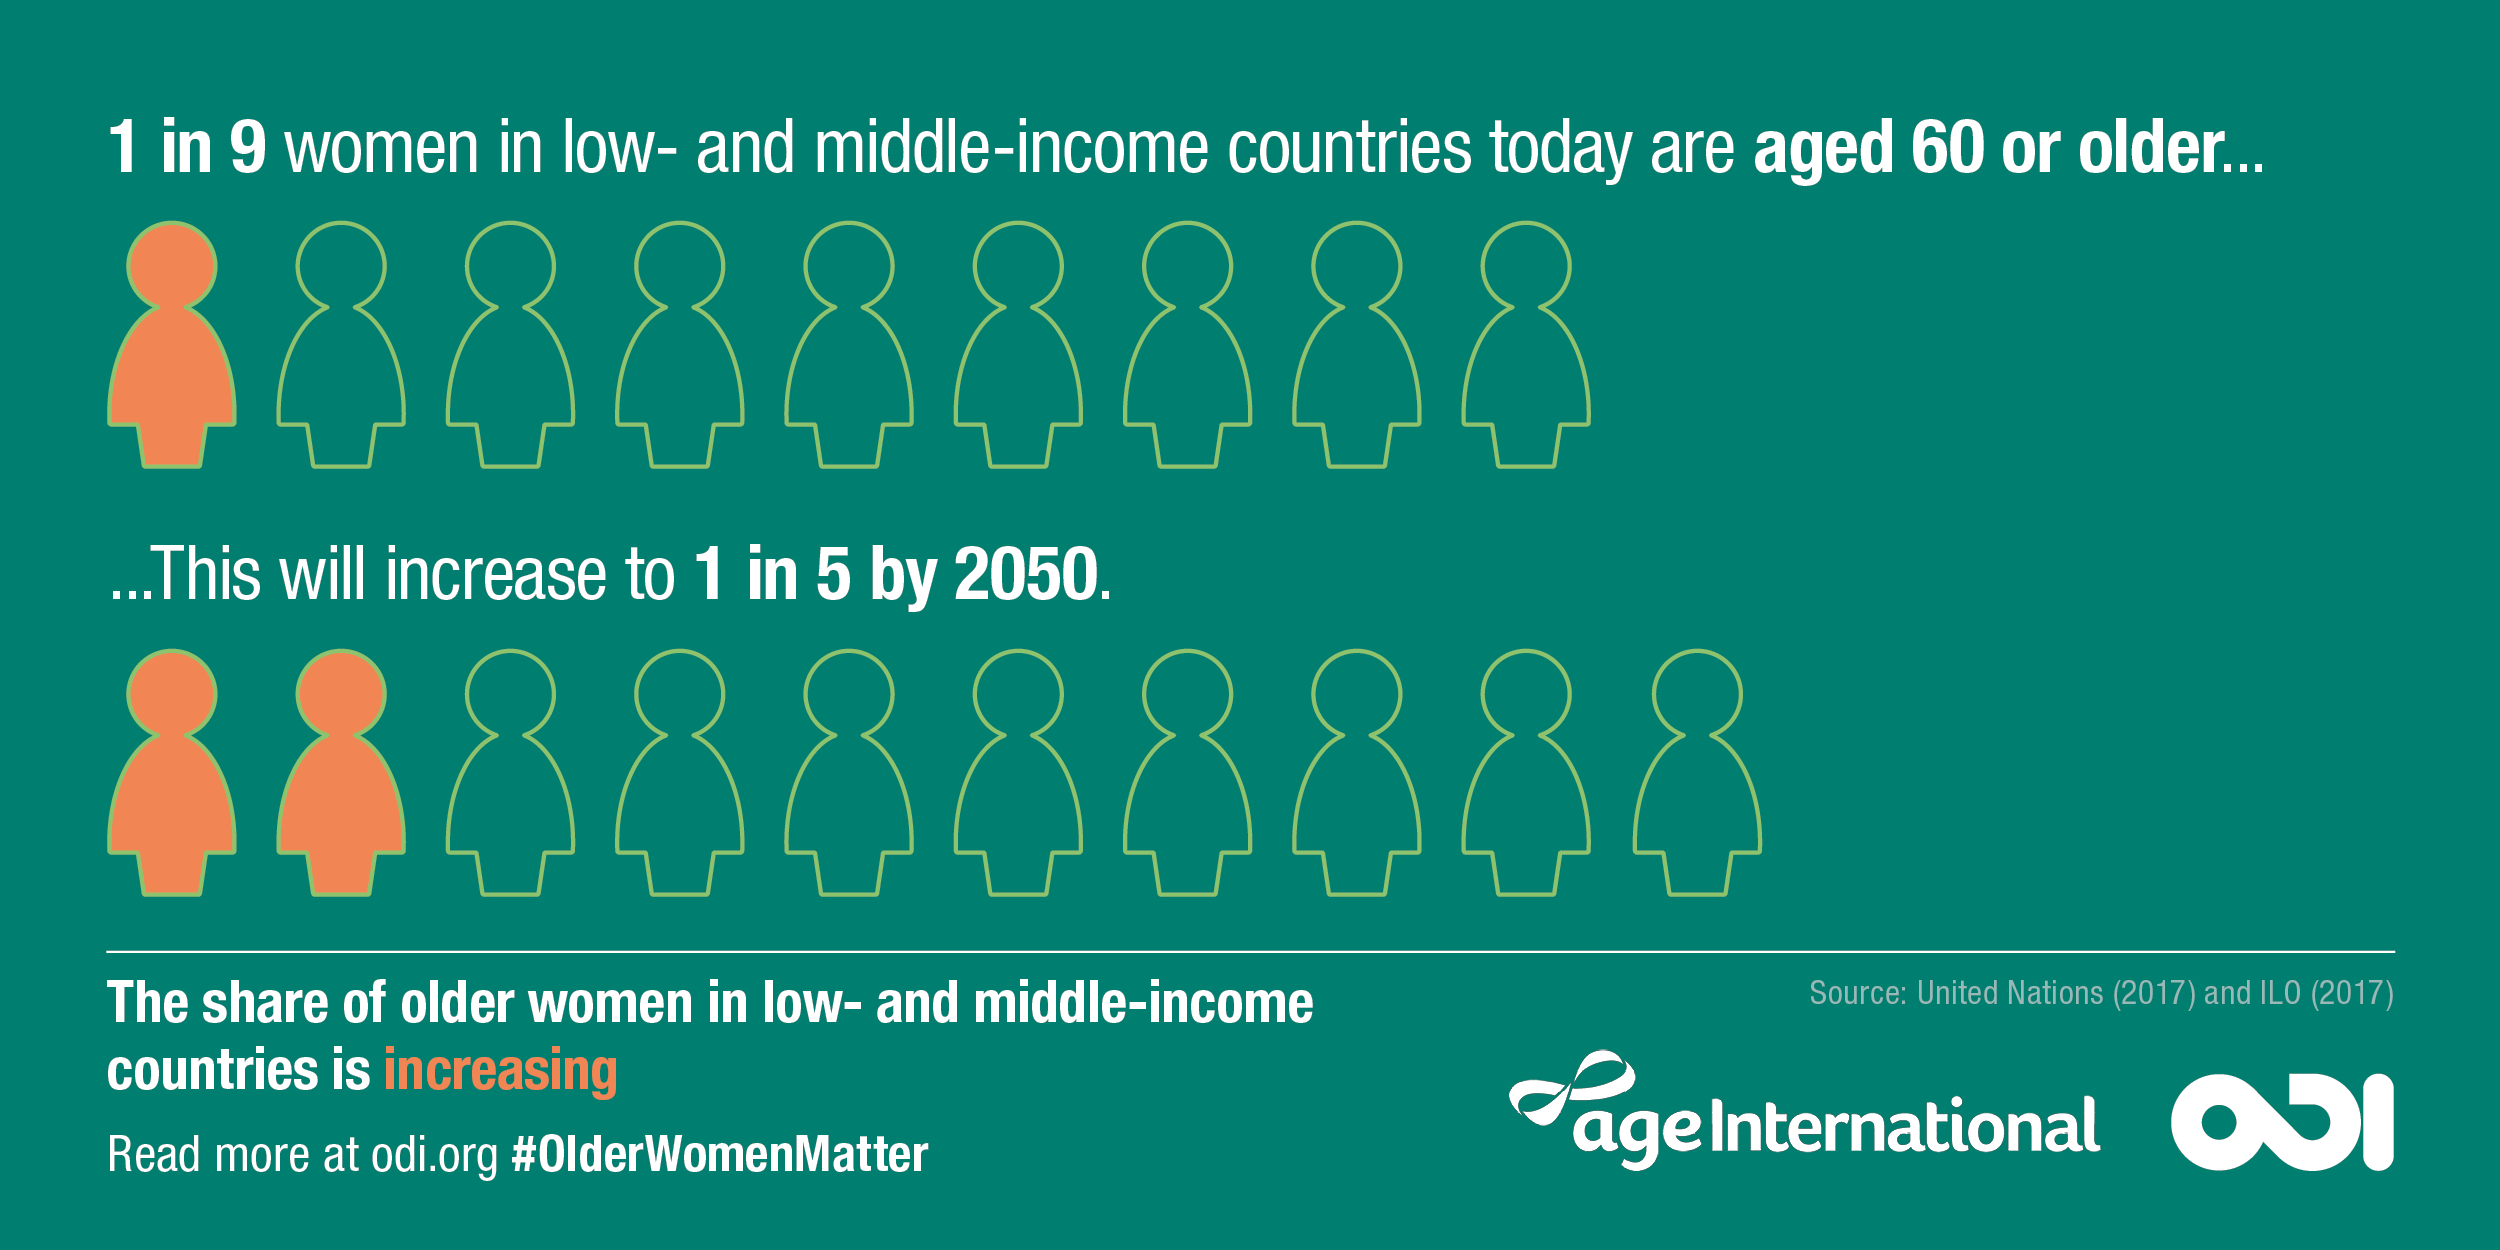 Infographic: the share of older women in low- and middle-income countries is increasing